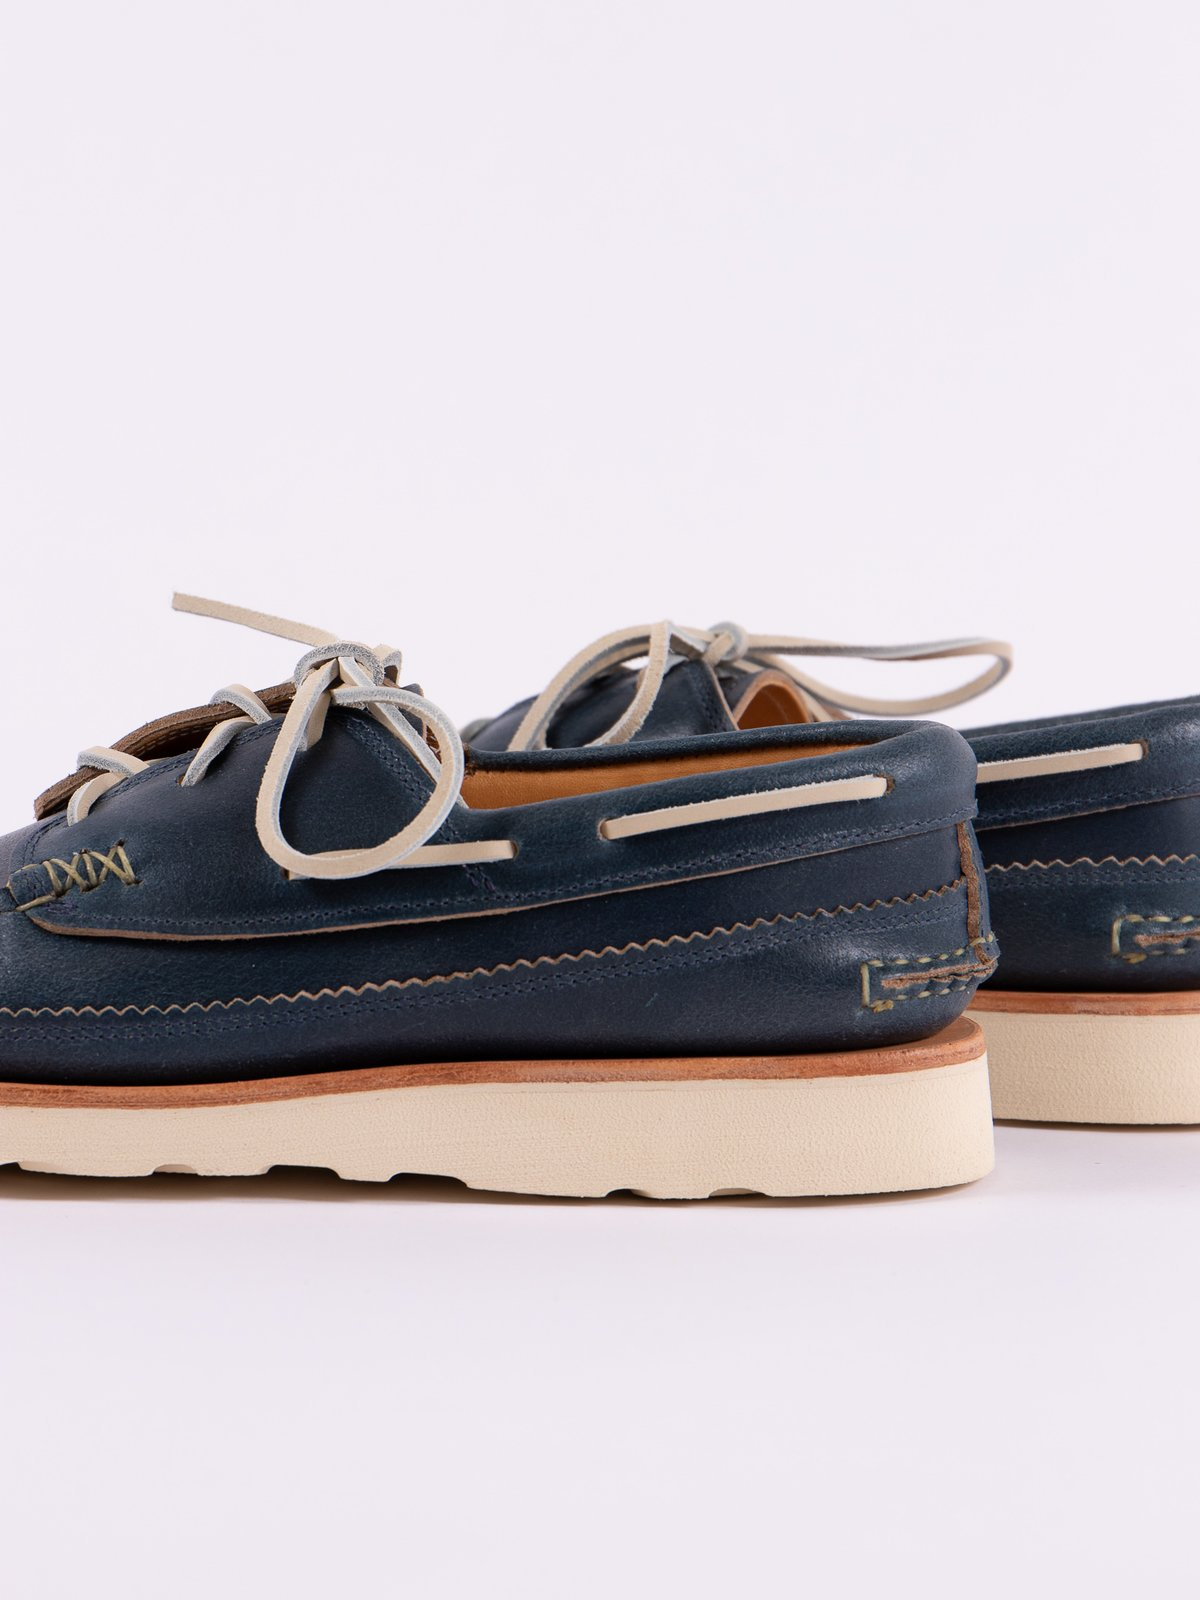 Wax Blue Boat Shoe Exclusive - Image 4